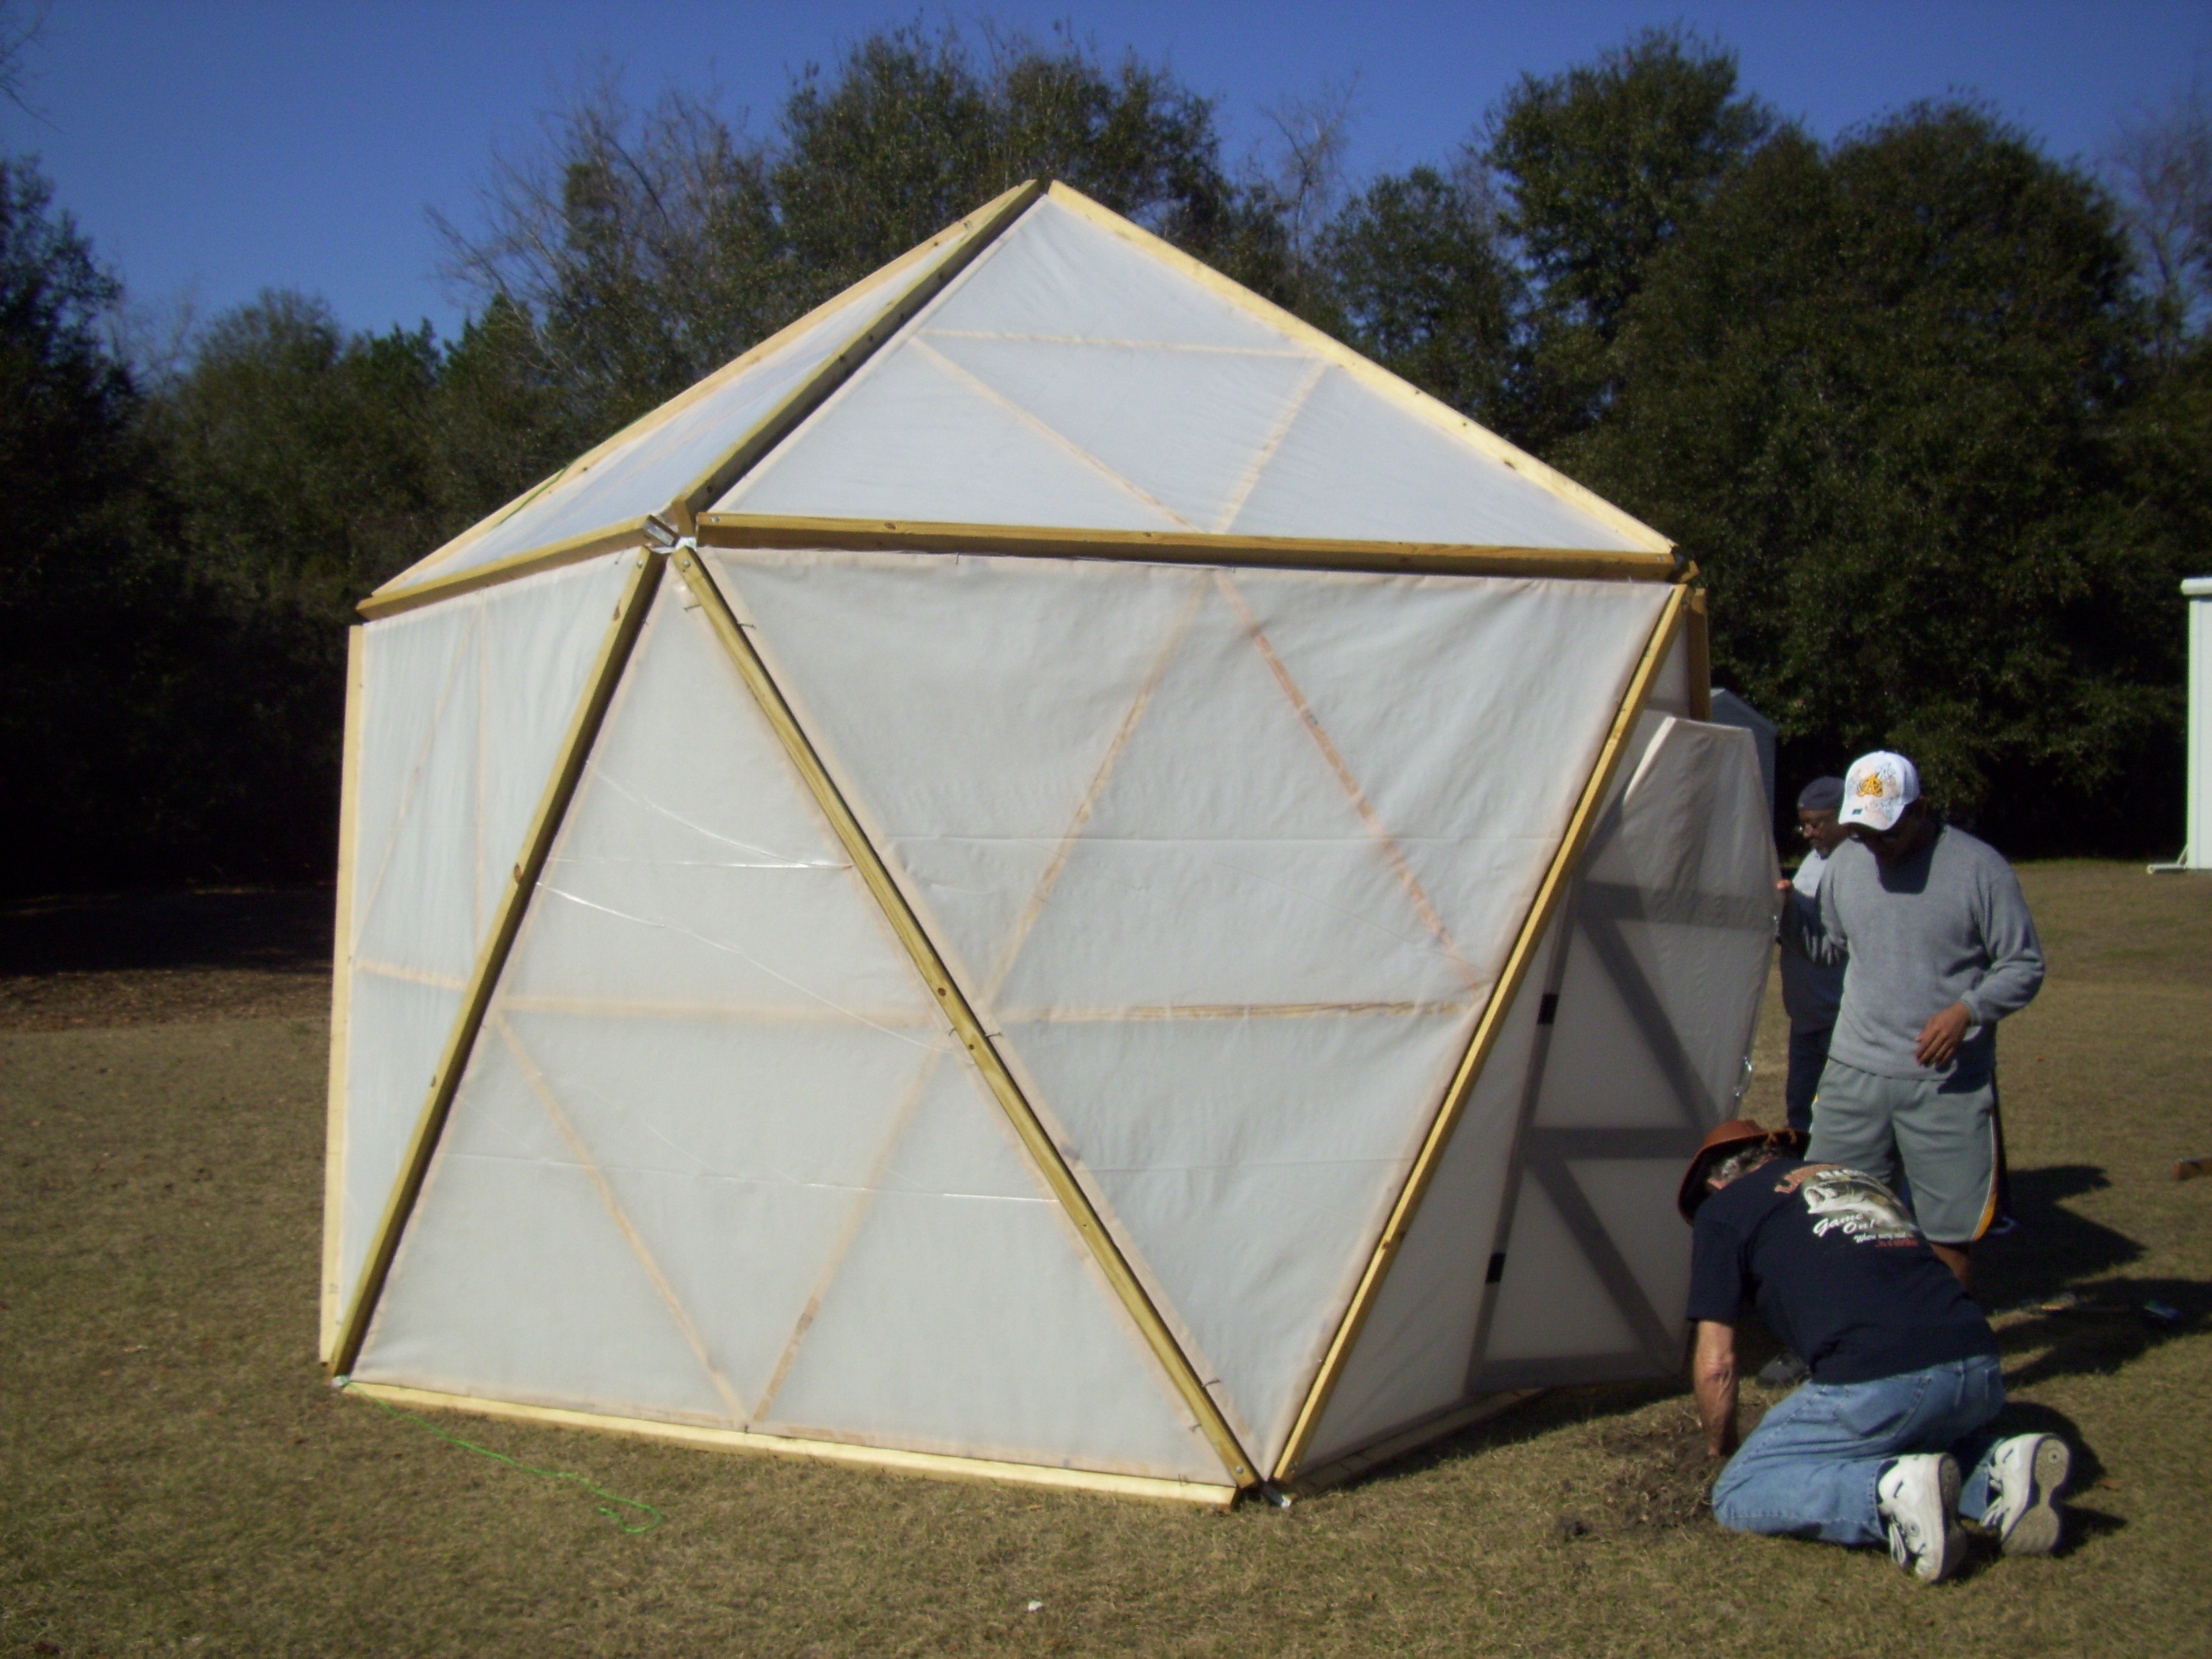 The ... & This blog is about my project to use dome-shaped tents for ...